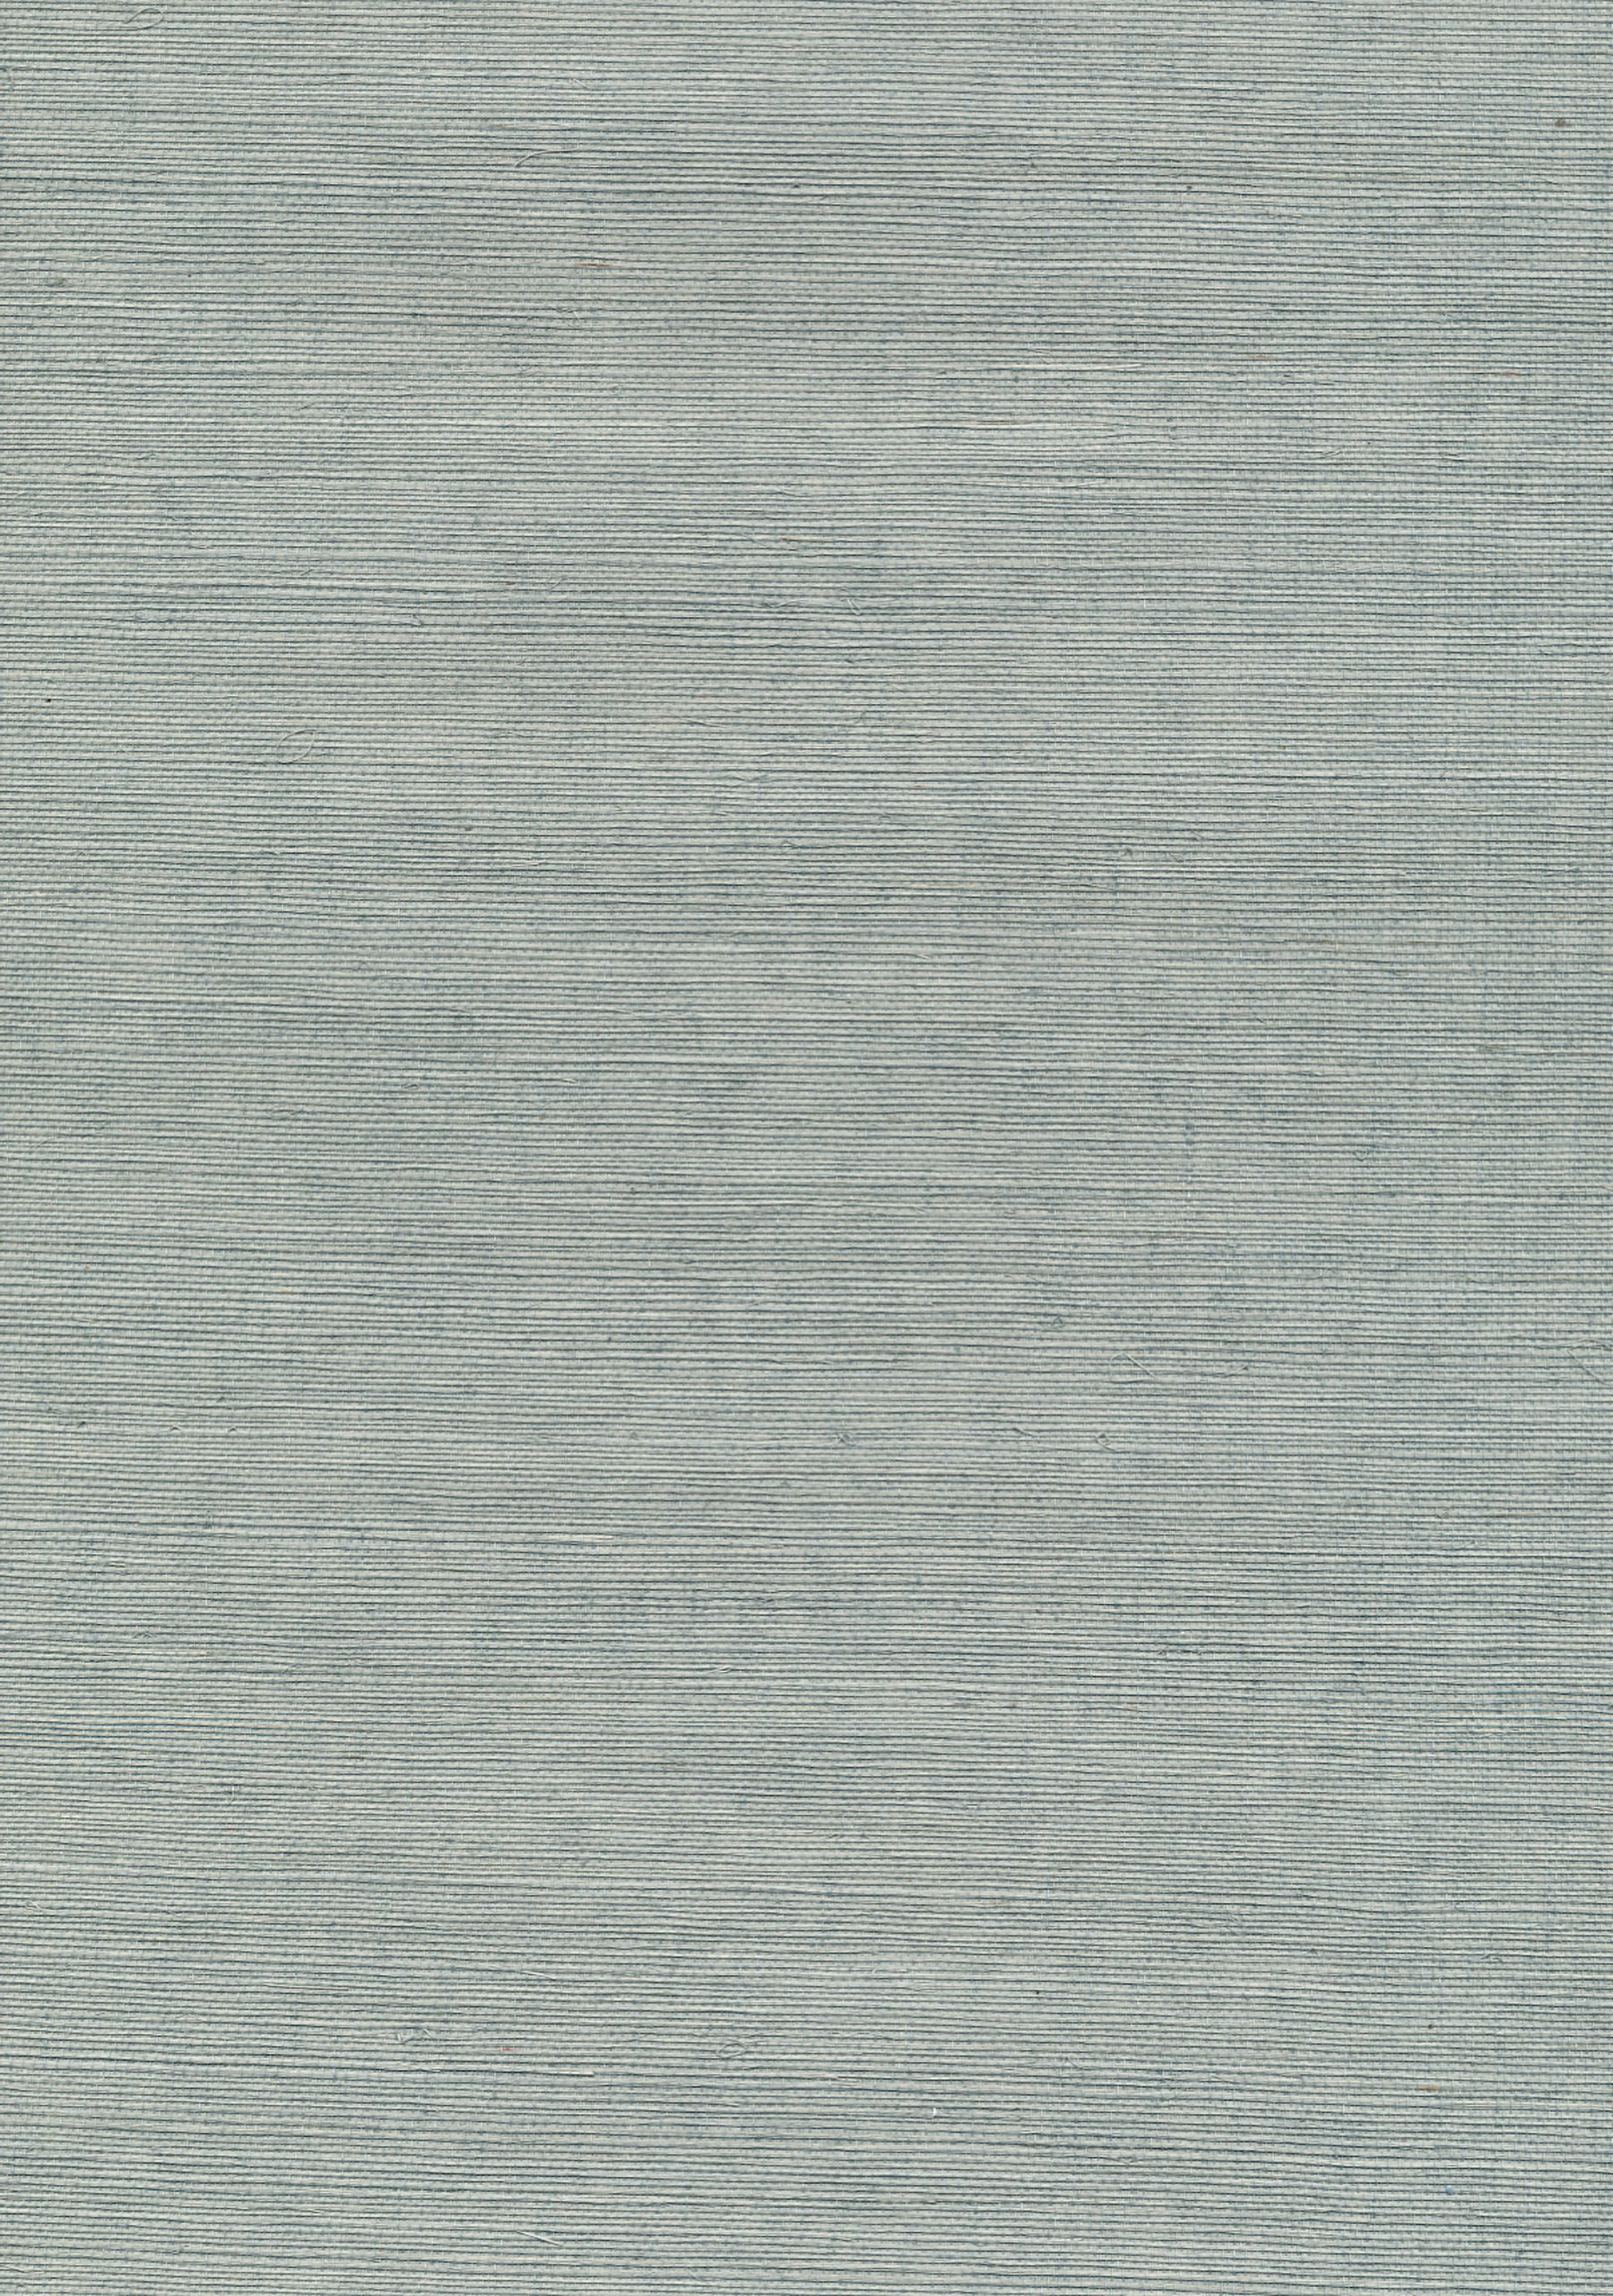 Brewster 53-65416 36-Inch by 288-Inch Haruki - Hand weaved Grasscloth Wallpaper, Agua